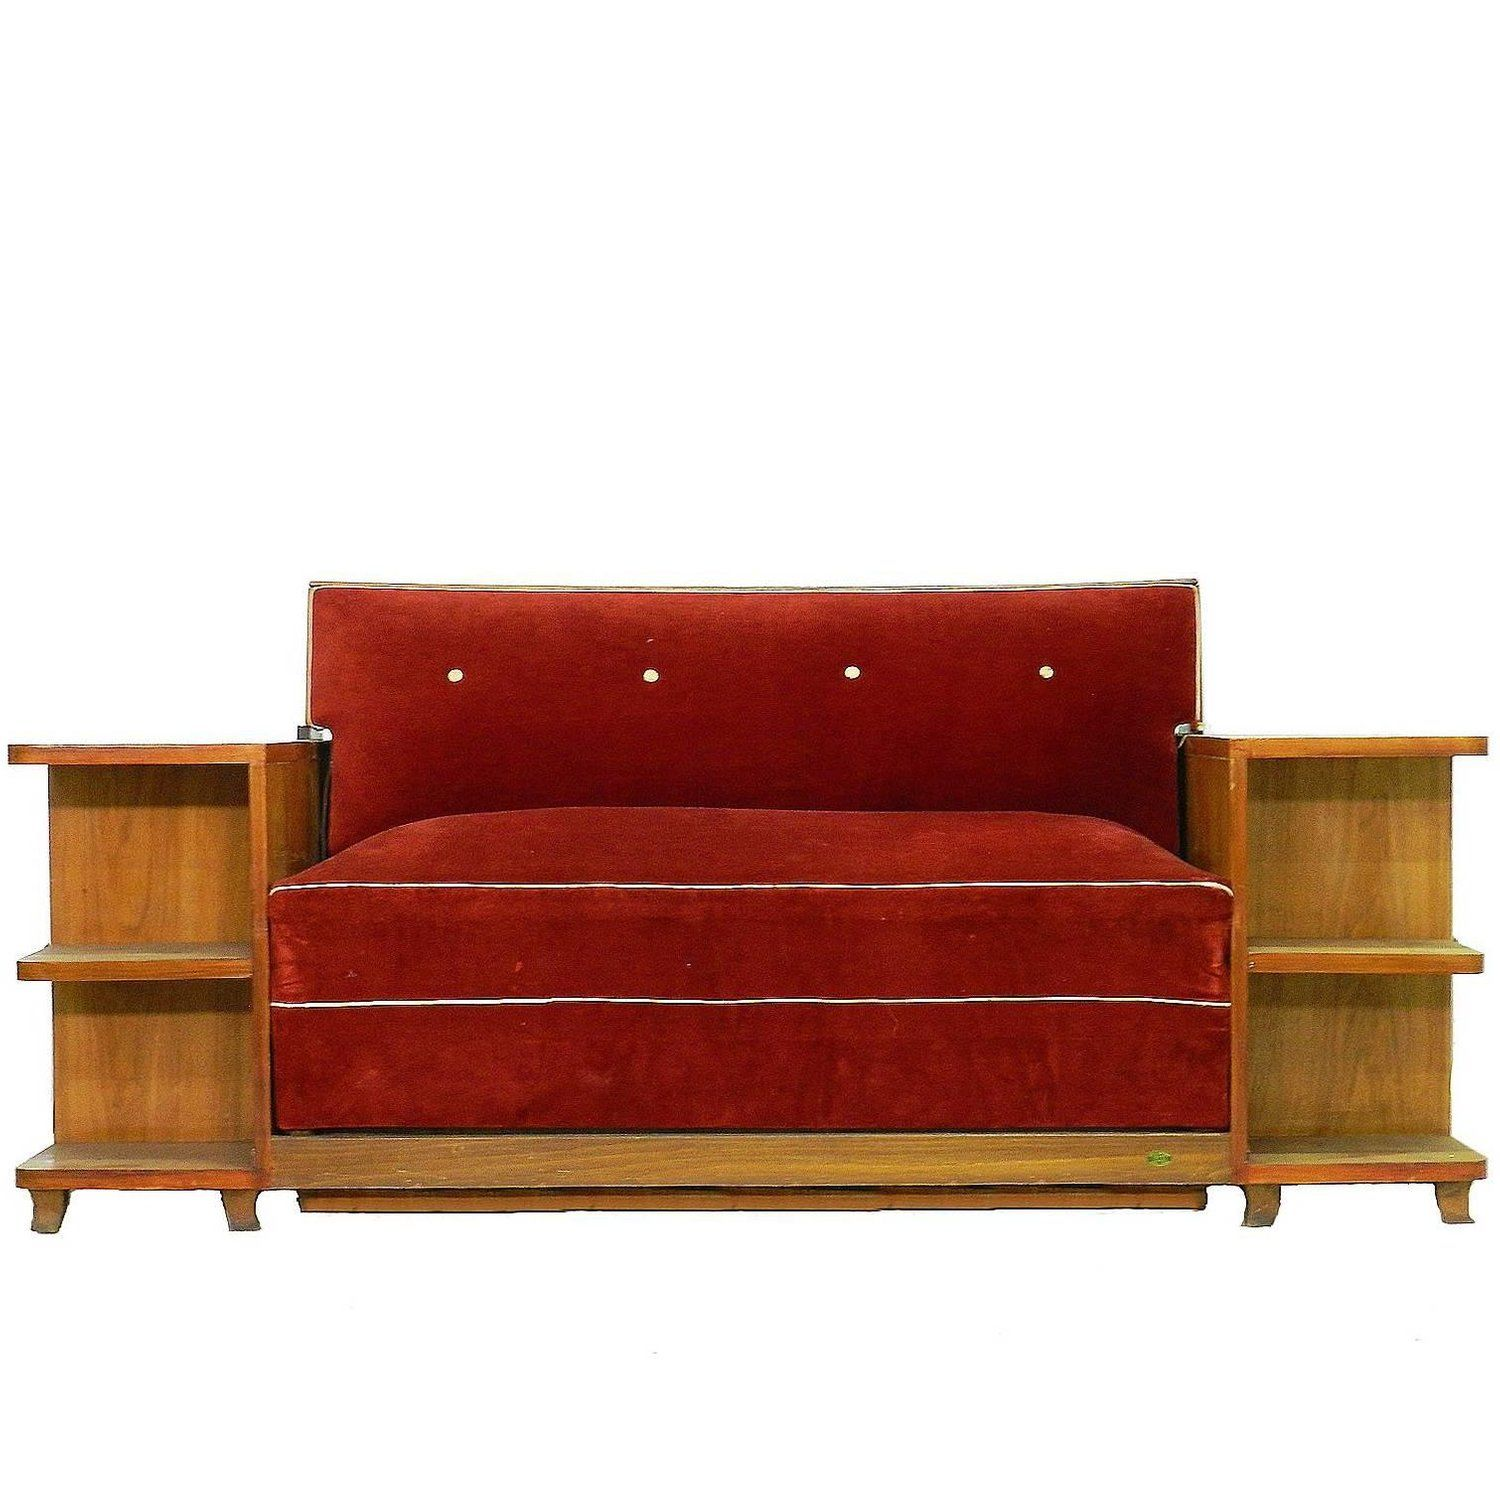 Terrific Art Deco Sofa French Canape Bed With Integrated Cabinets And Evergreenethics Interior Chair Design Evergreenethicsorg